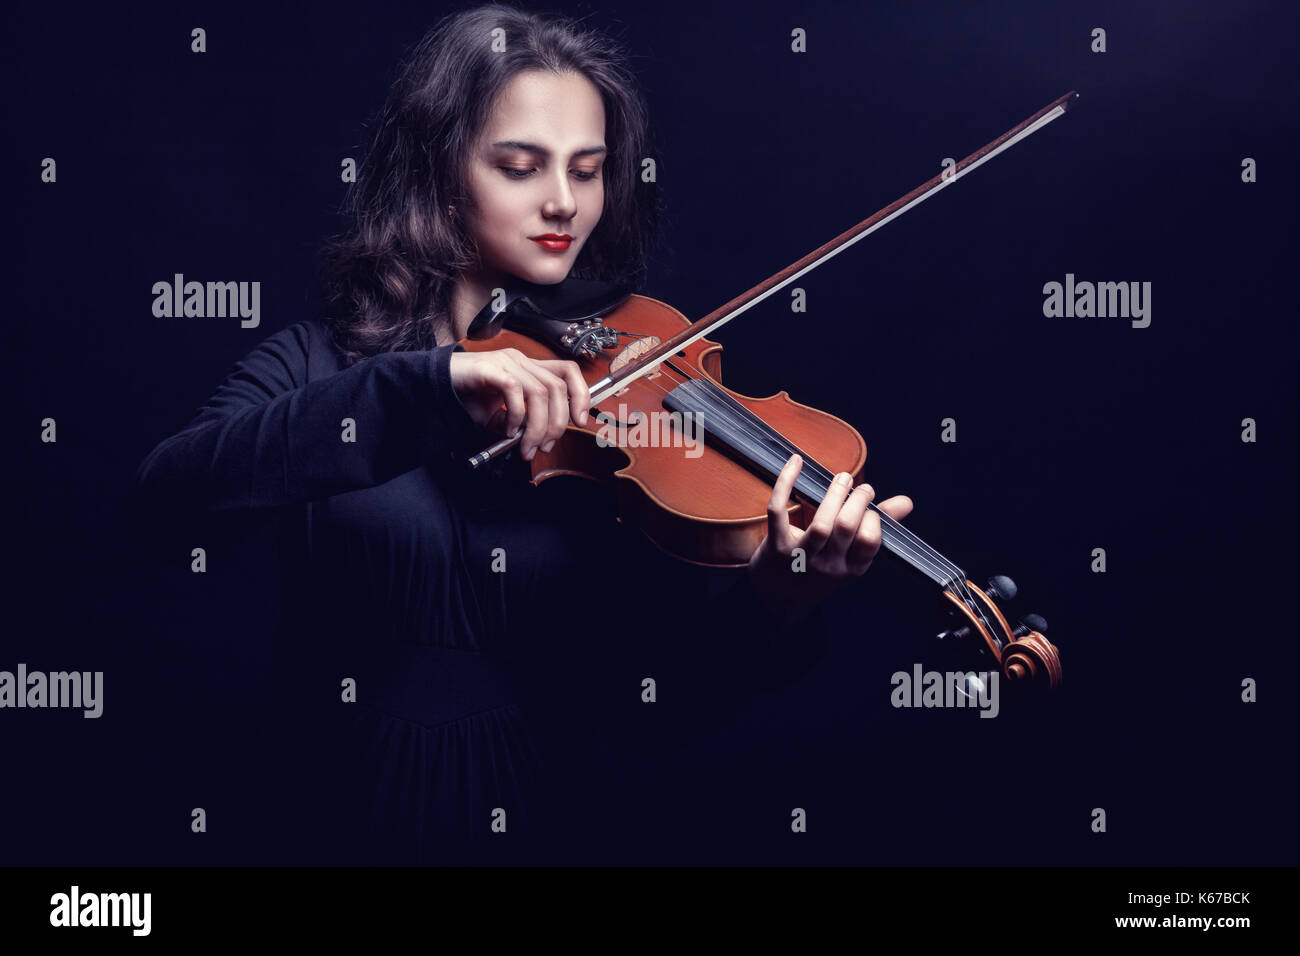 Young woman playing the violin against a dark background. Studio photo - Stock Image